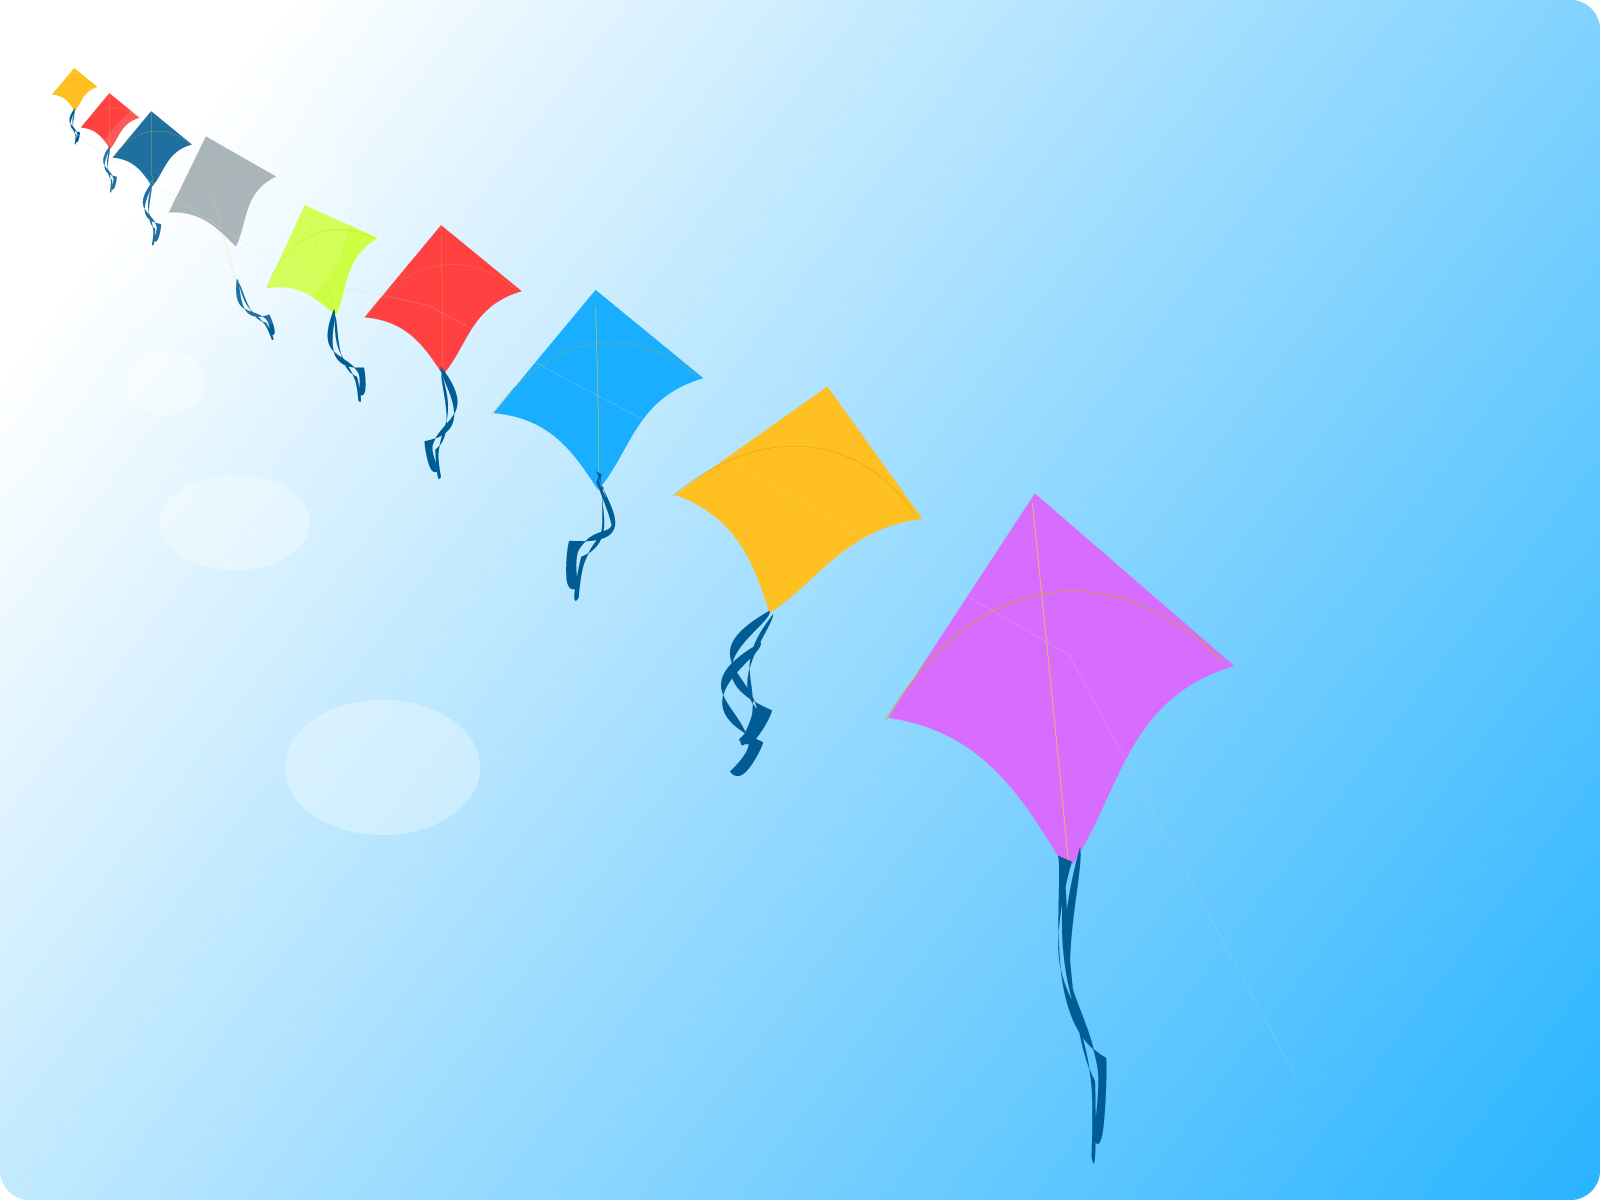 Row of Kites Backgrounds | Cartoon, Games Templates | Free